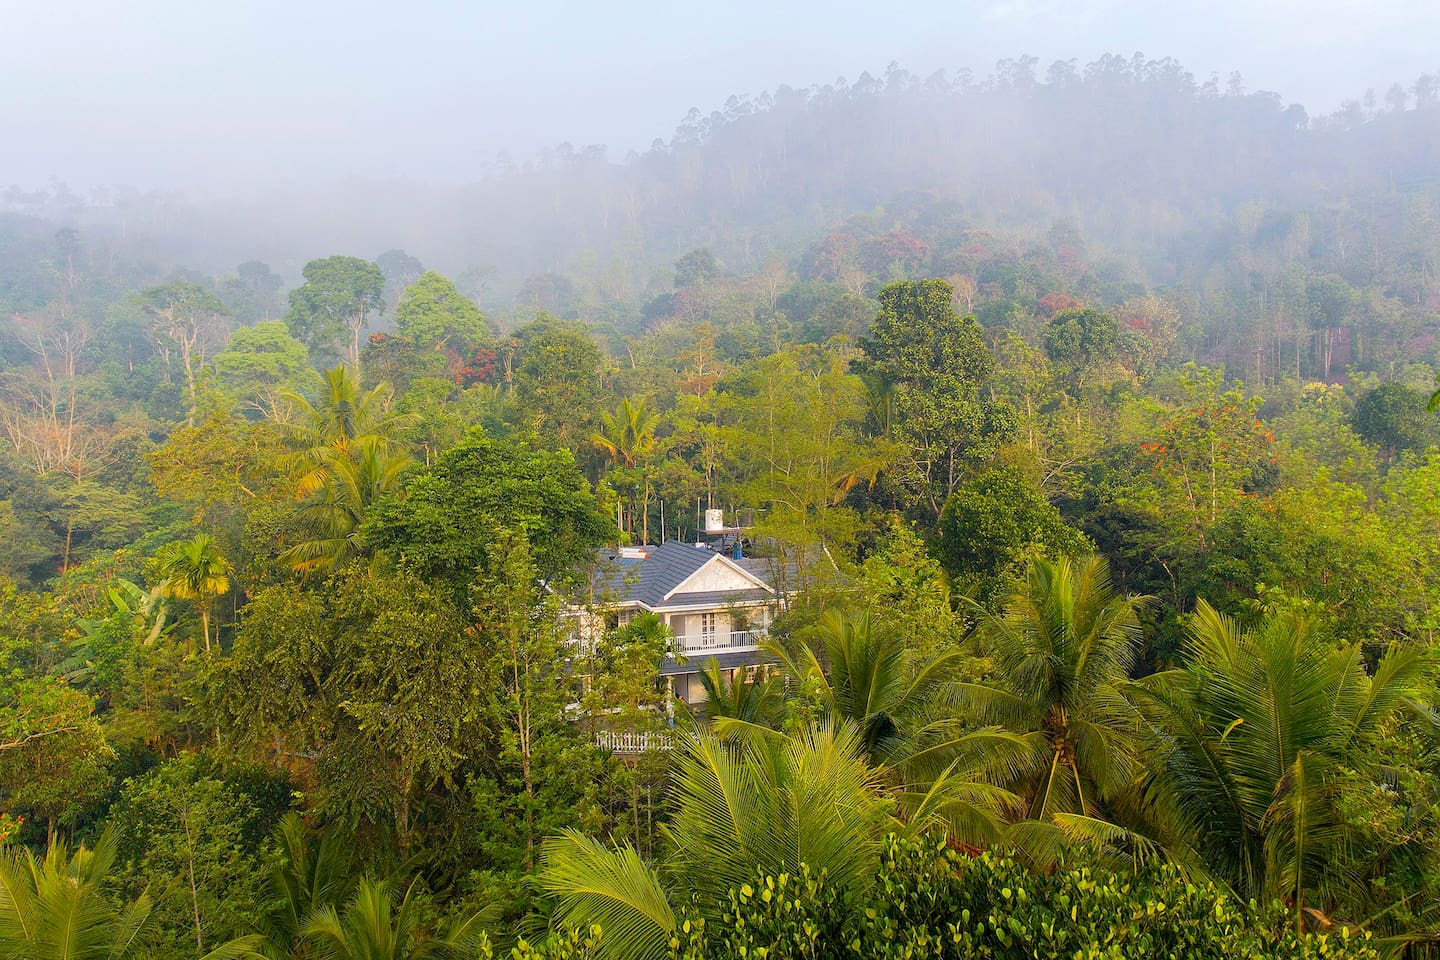 The homestay is located in an idyllic plantation surrounded by lush rolling hills and tea estates